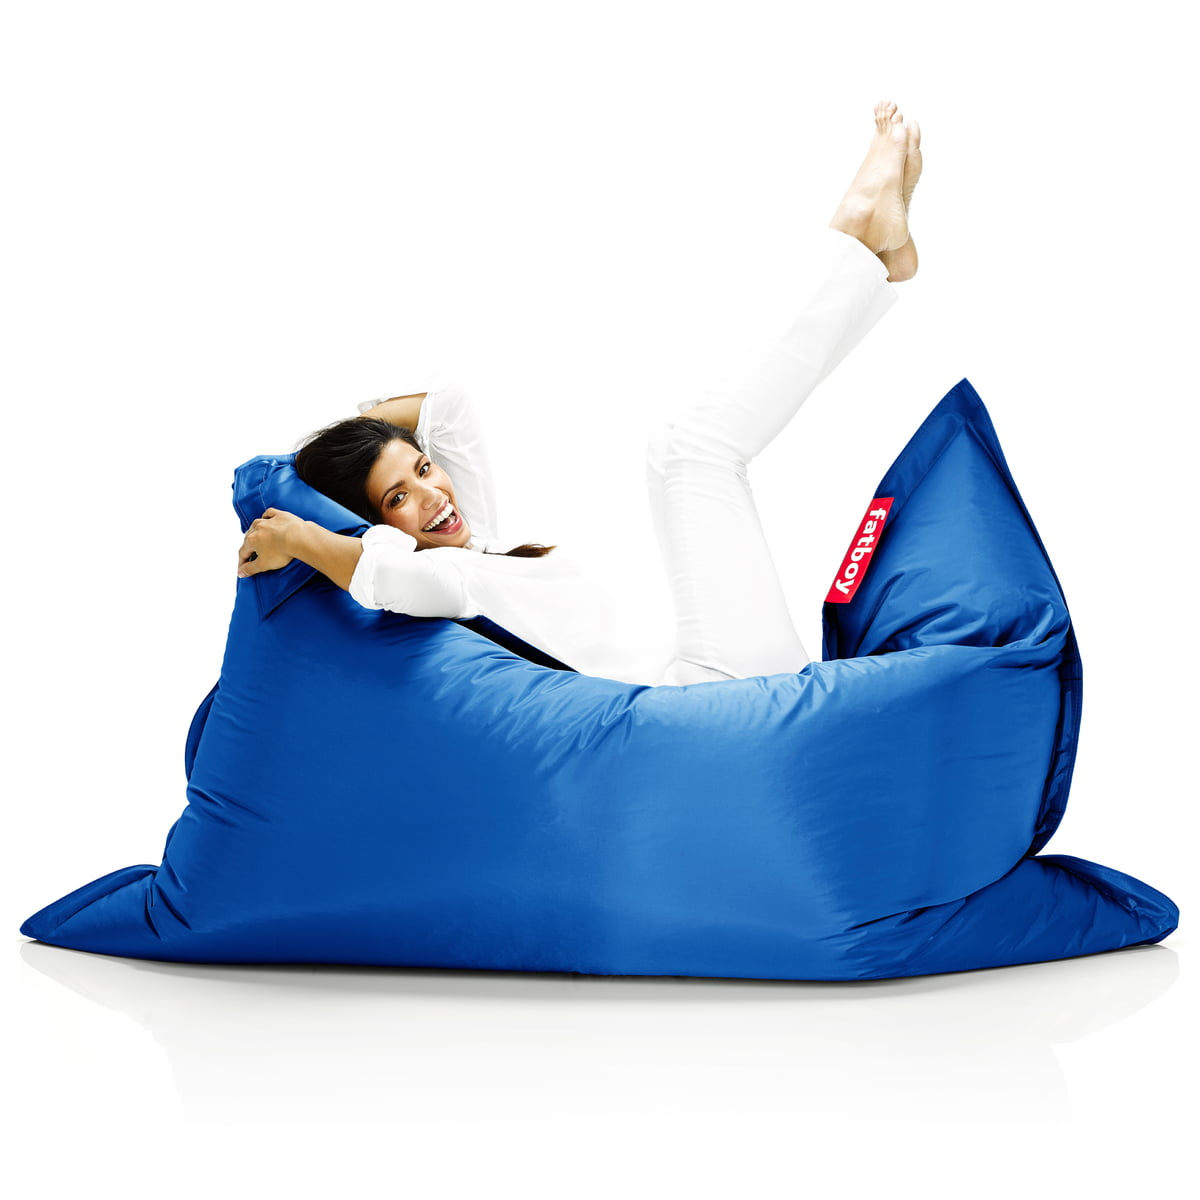 Fatboy Original Beanbag Situation With Woman On Blue